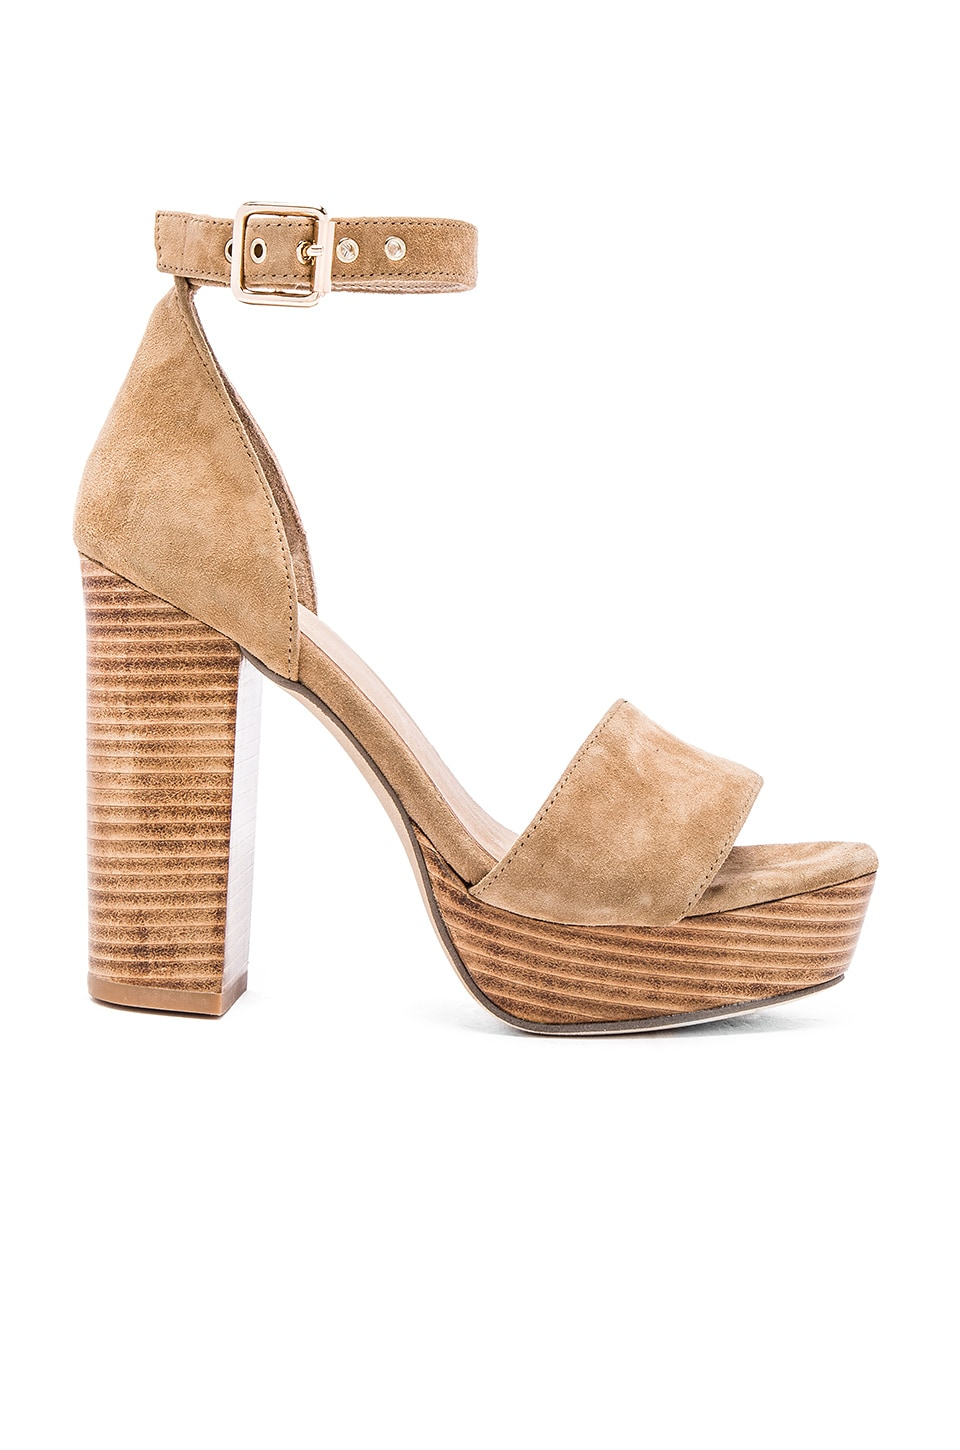 RAYE Hannah Platform in Tan